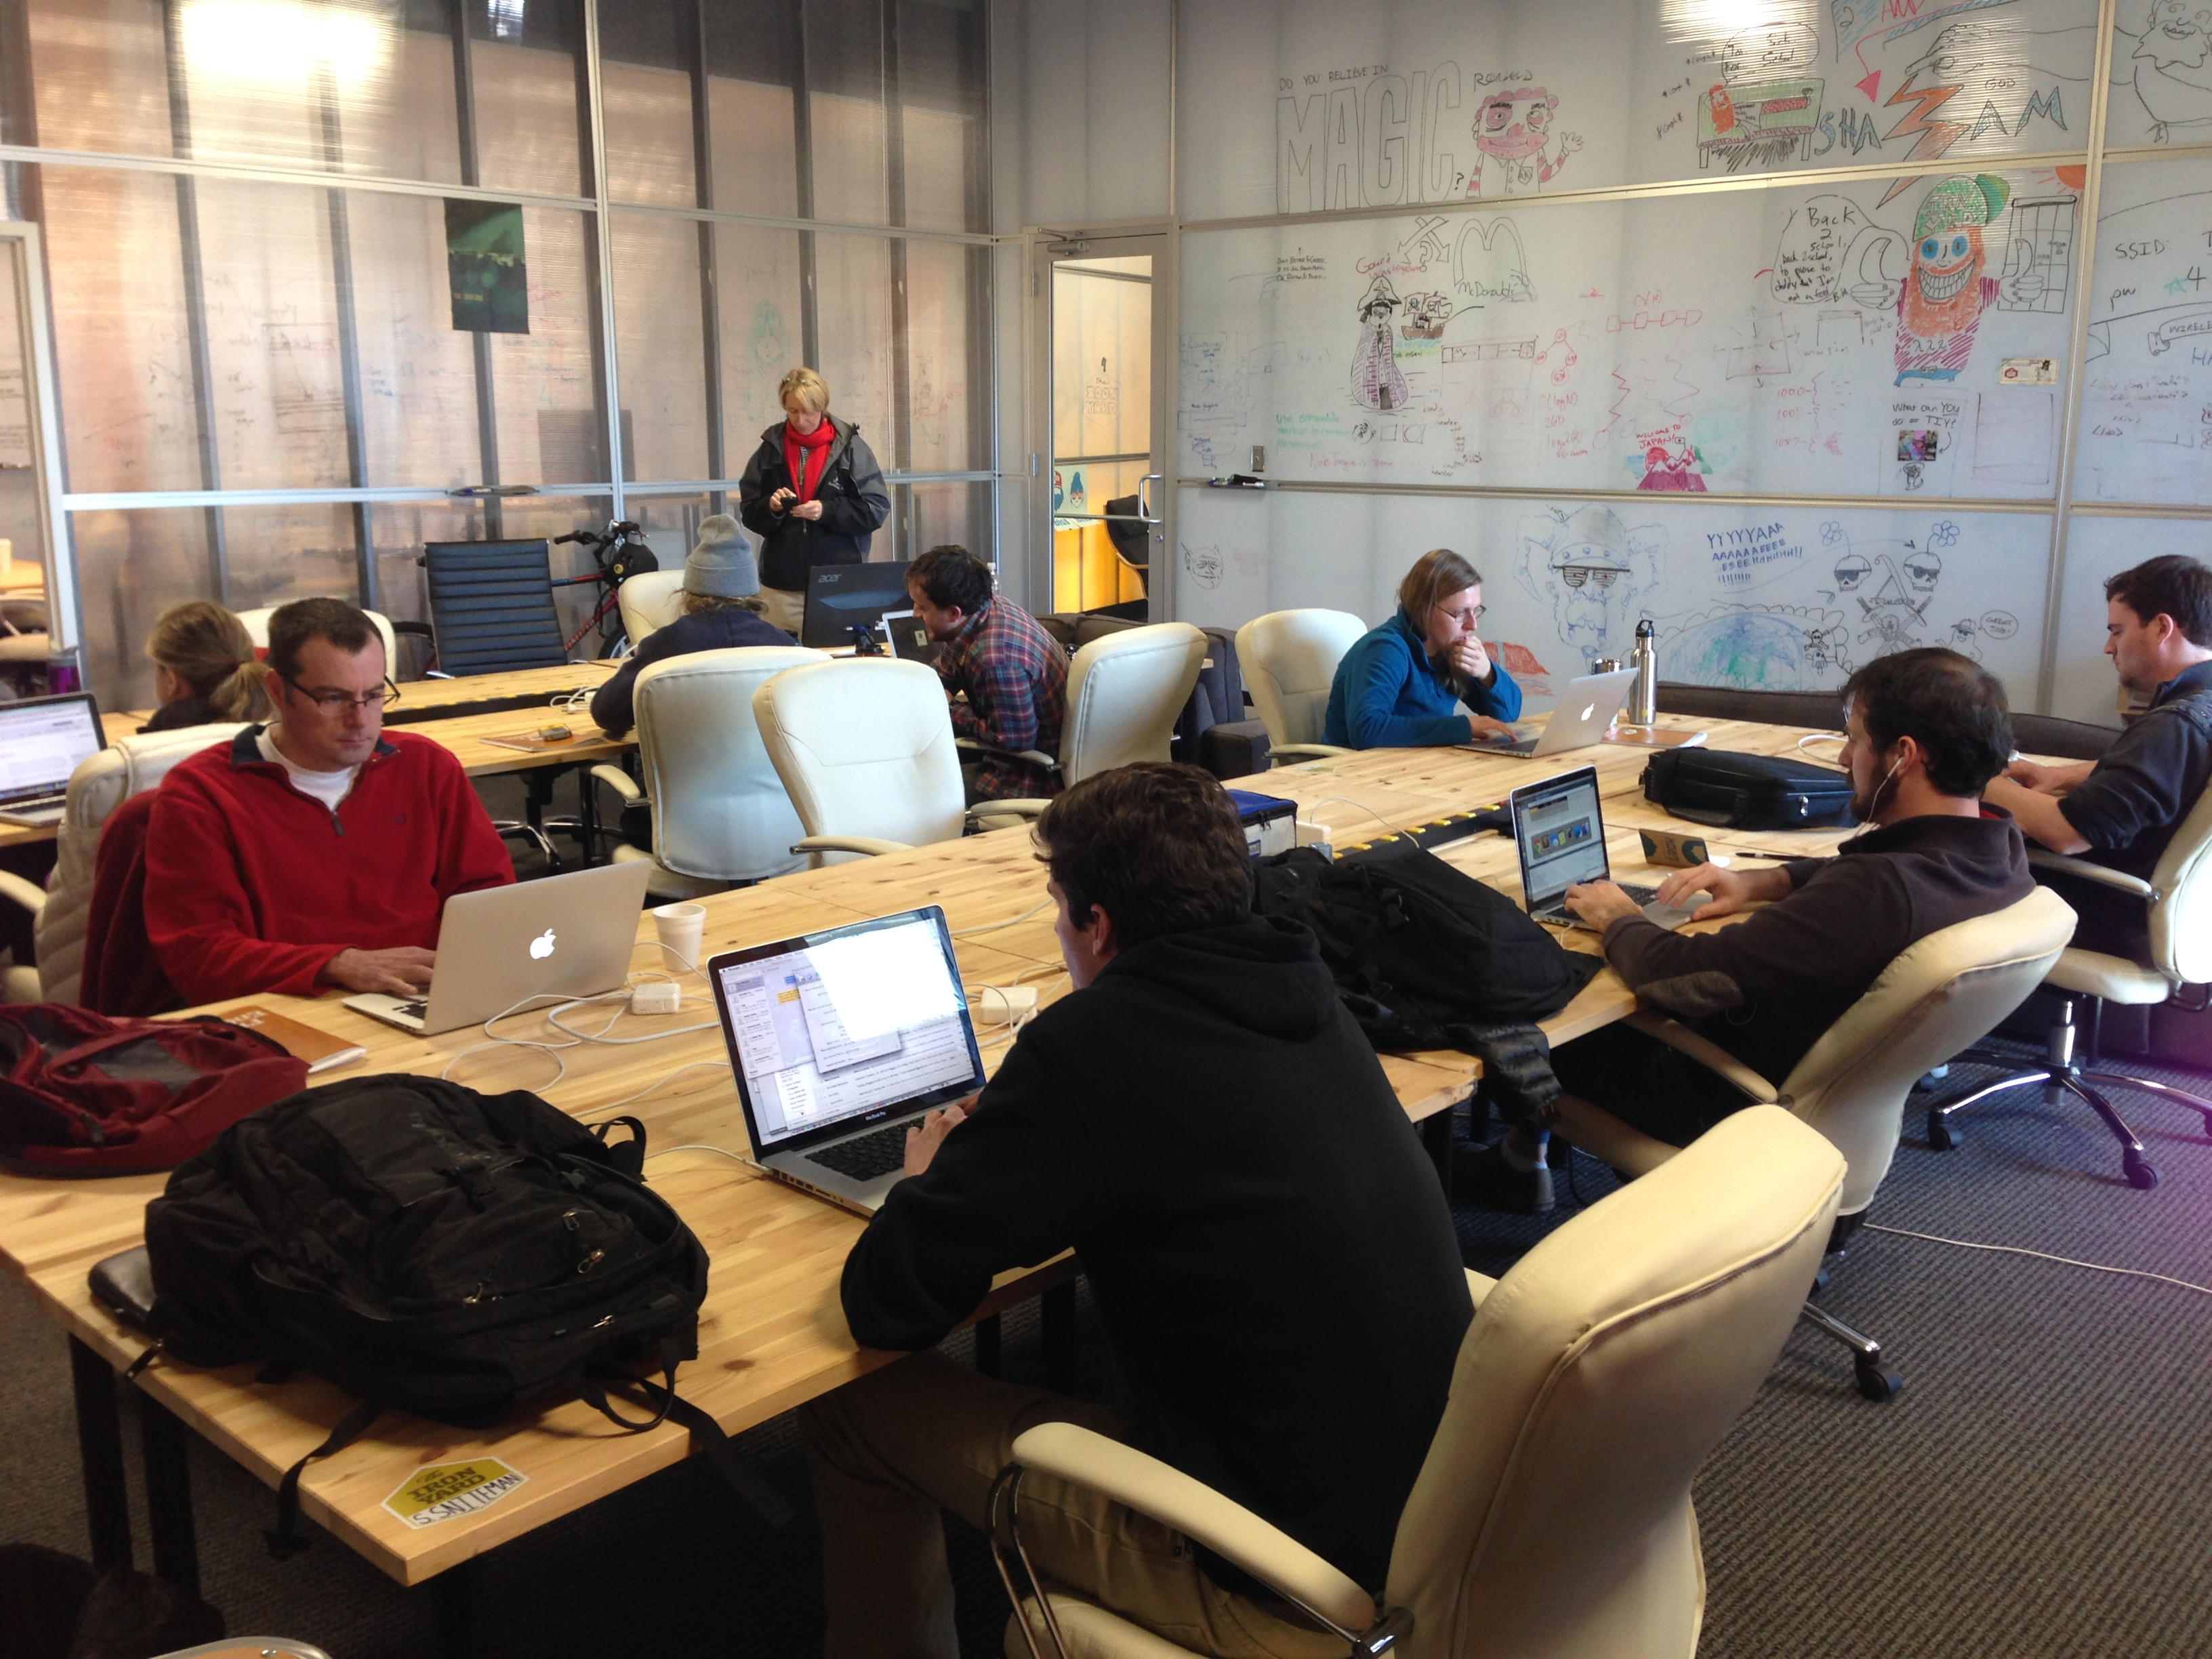 Co-working space for students and teachers in Greenville